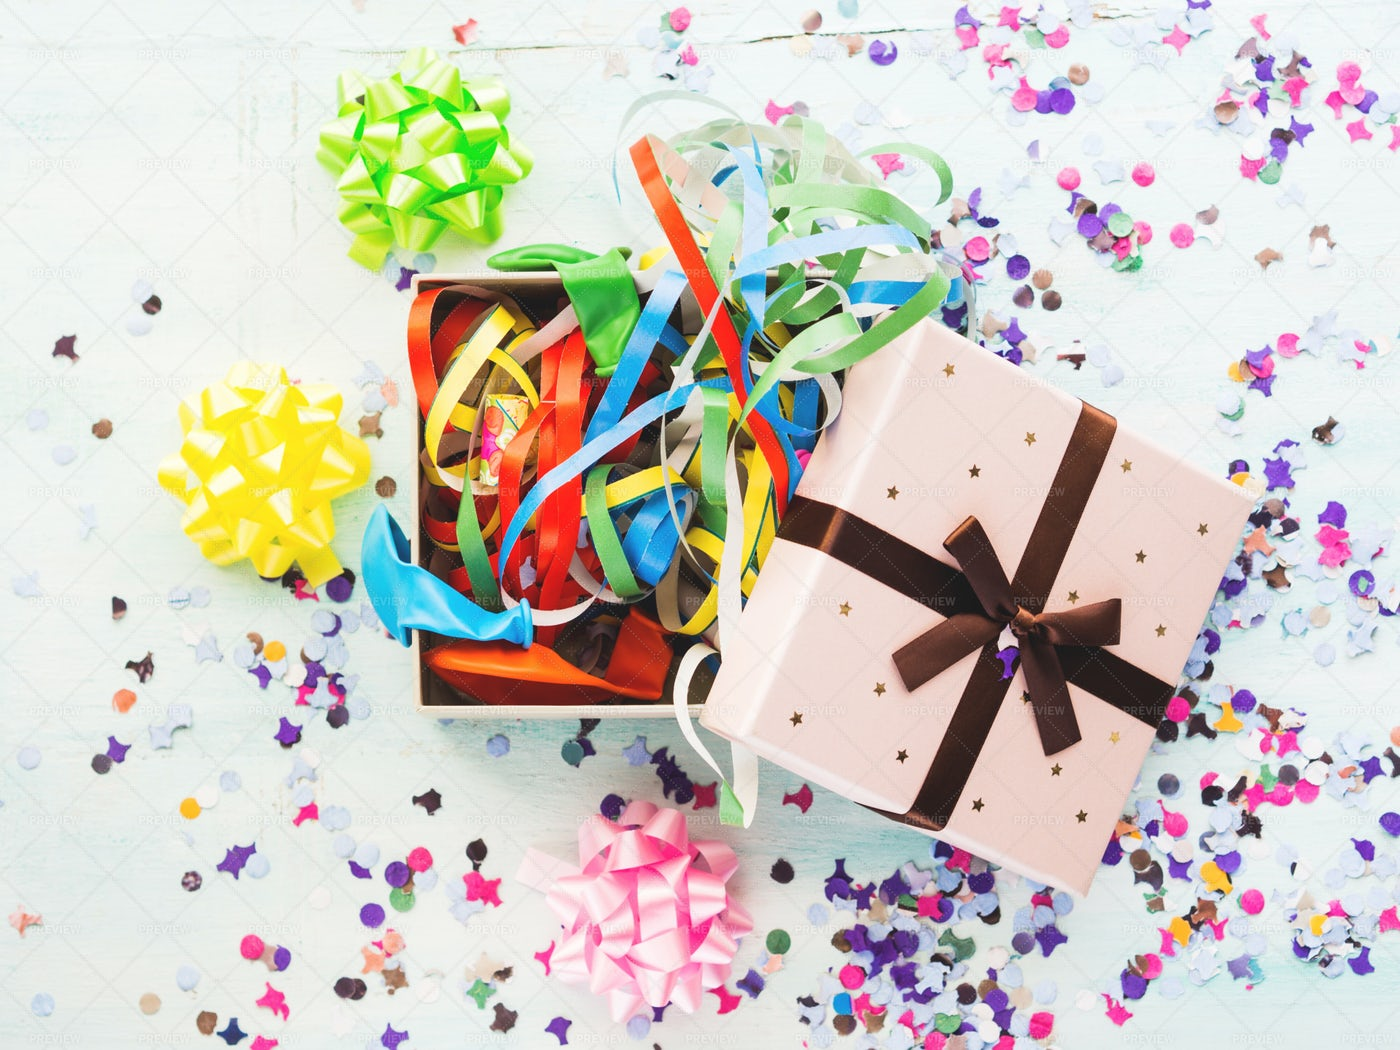 Gift Box With Streamers: Stock Photos